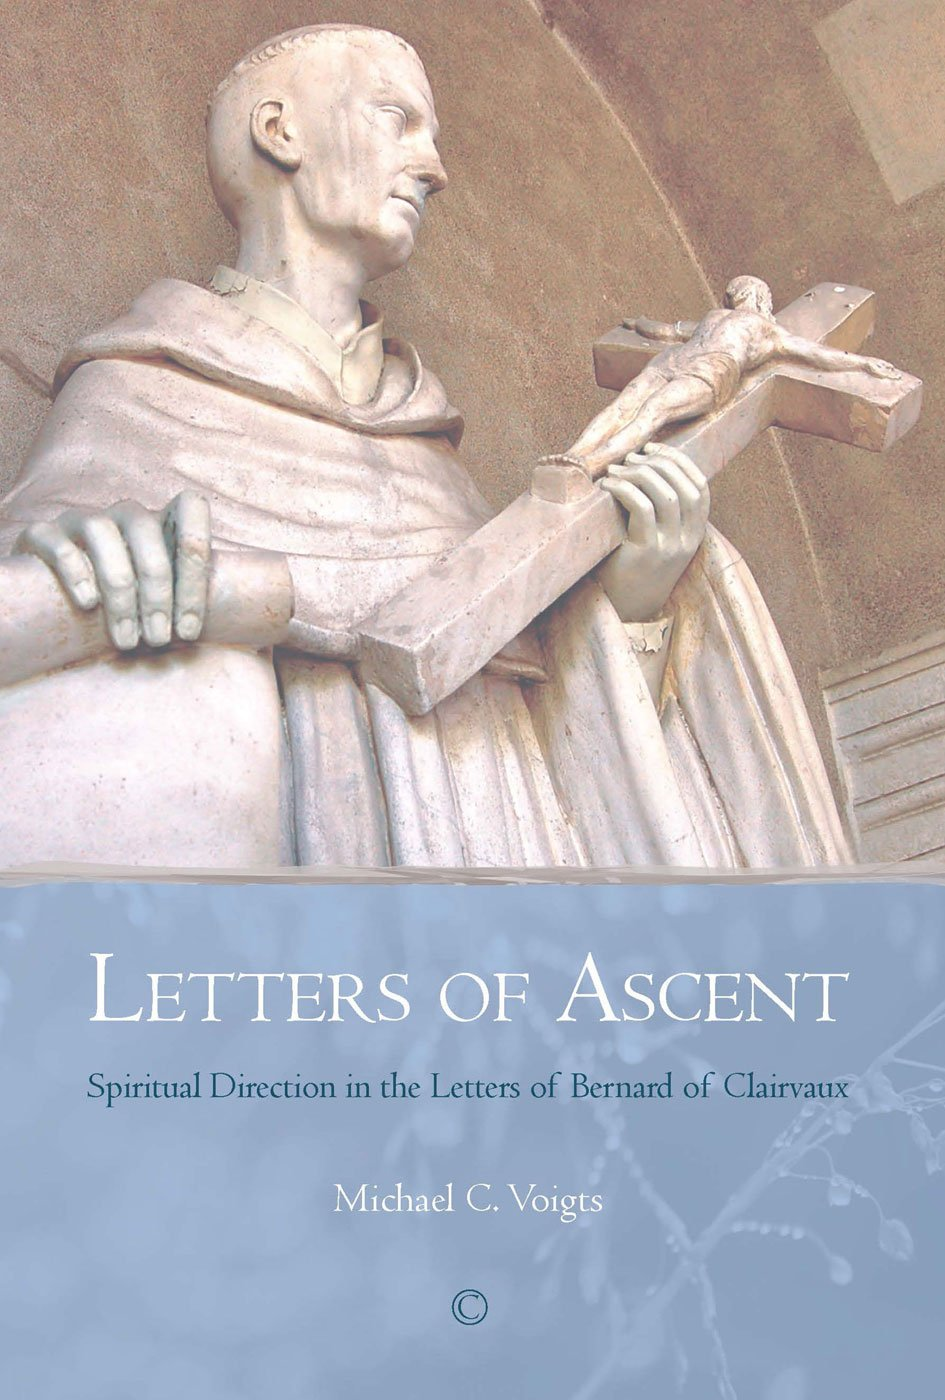 Letters of Ascent: Spiritual Direction in the Letters of Bernard of Clairvaux PDF